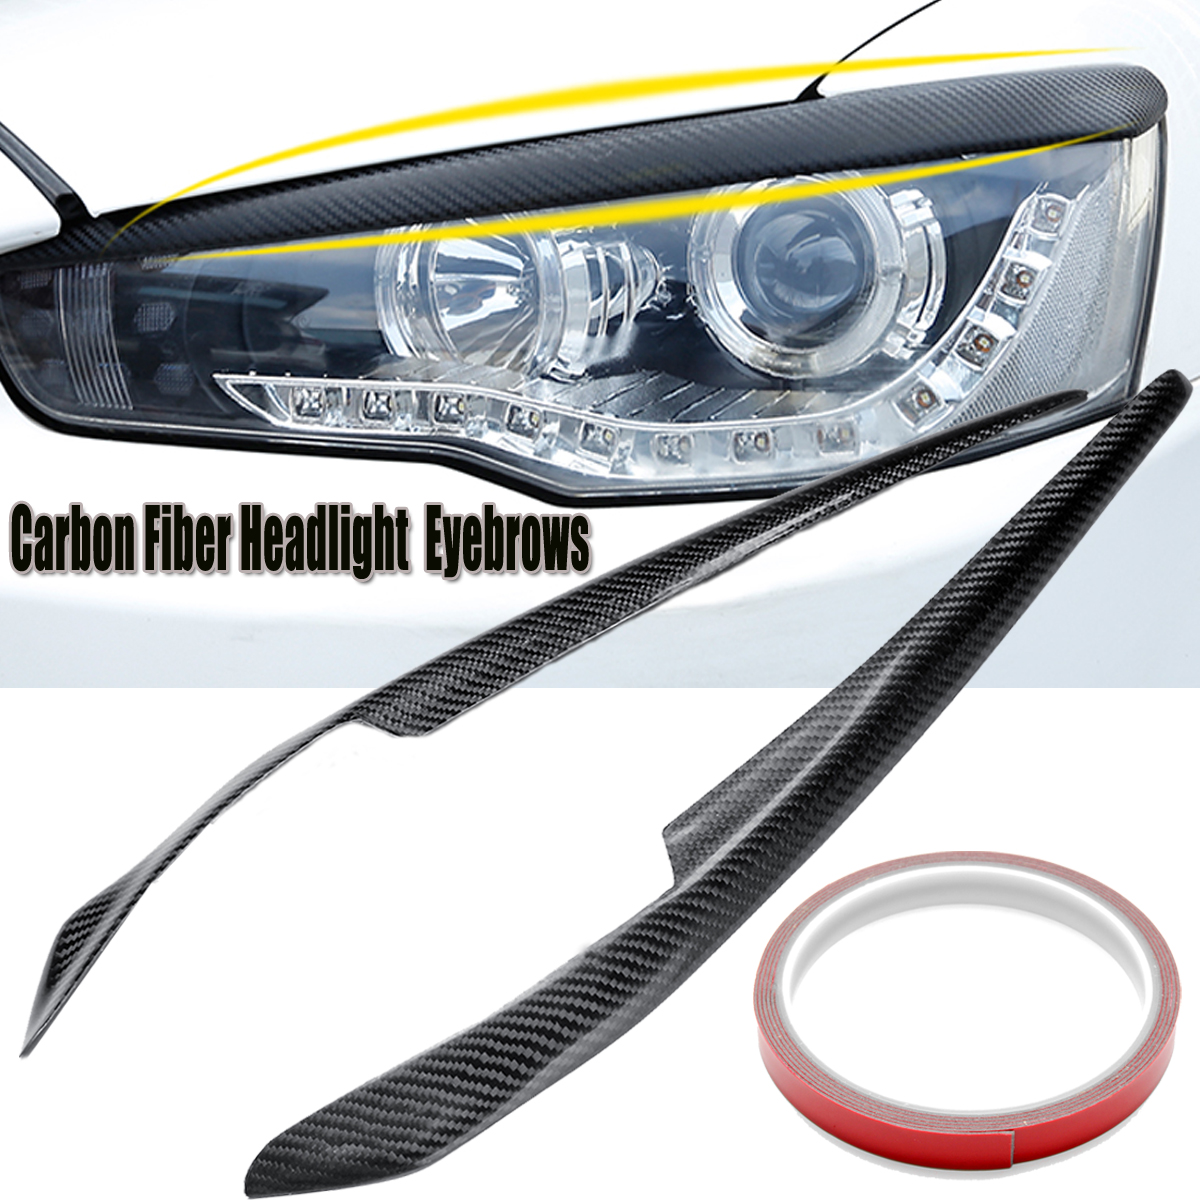 2pcs Car Headlight Eyelids Eyebrows Carbon Fiber Pattern for Mitsubishi Lancer EVO X 10 2008 2014